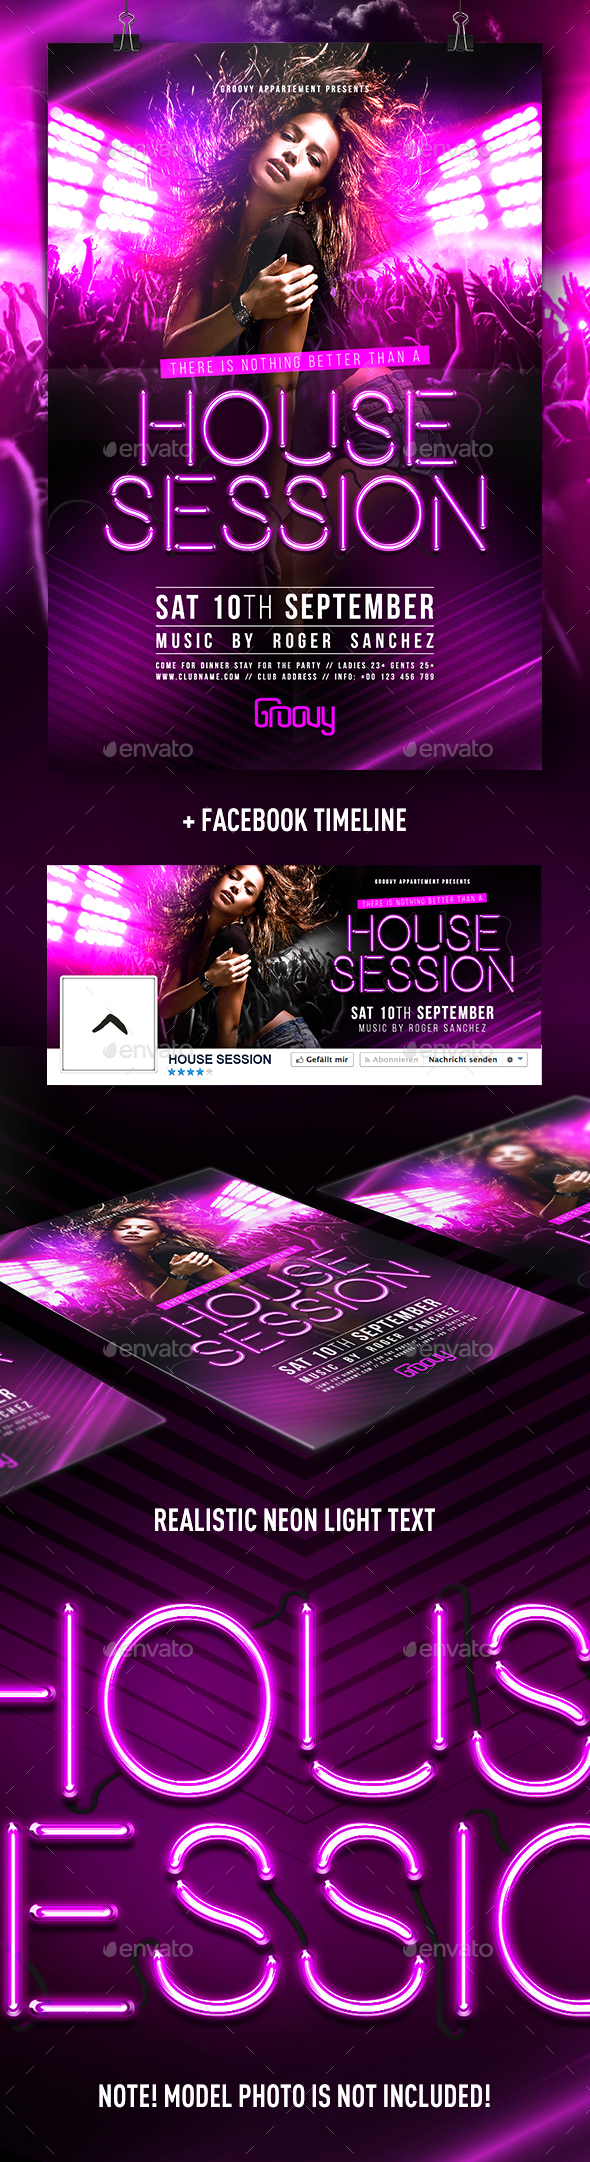 House Session Flyer - Clubs & Parties Events